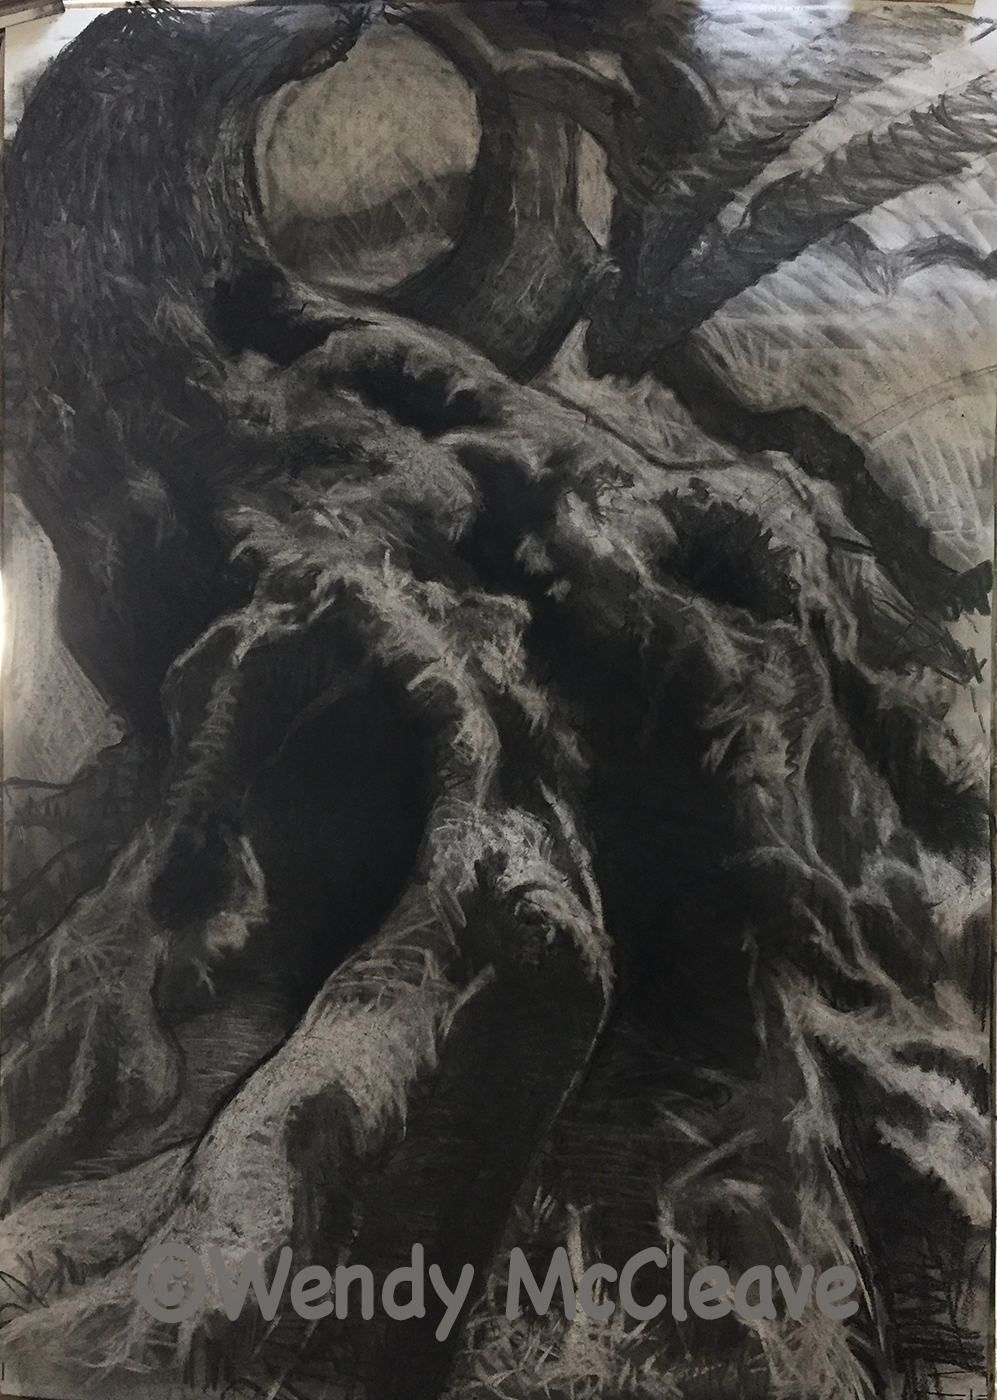 Charcoal drawing of the rough trunk of an ancient willow